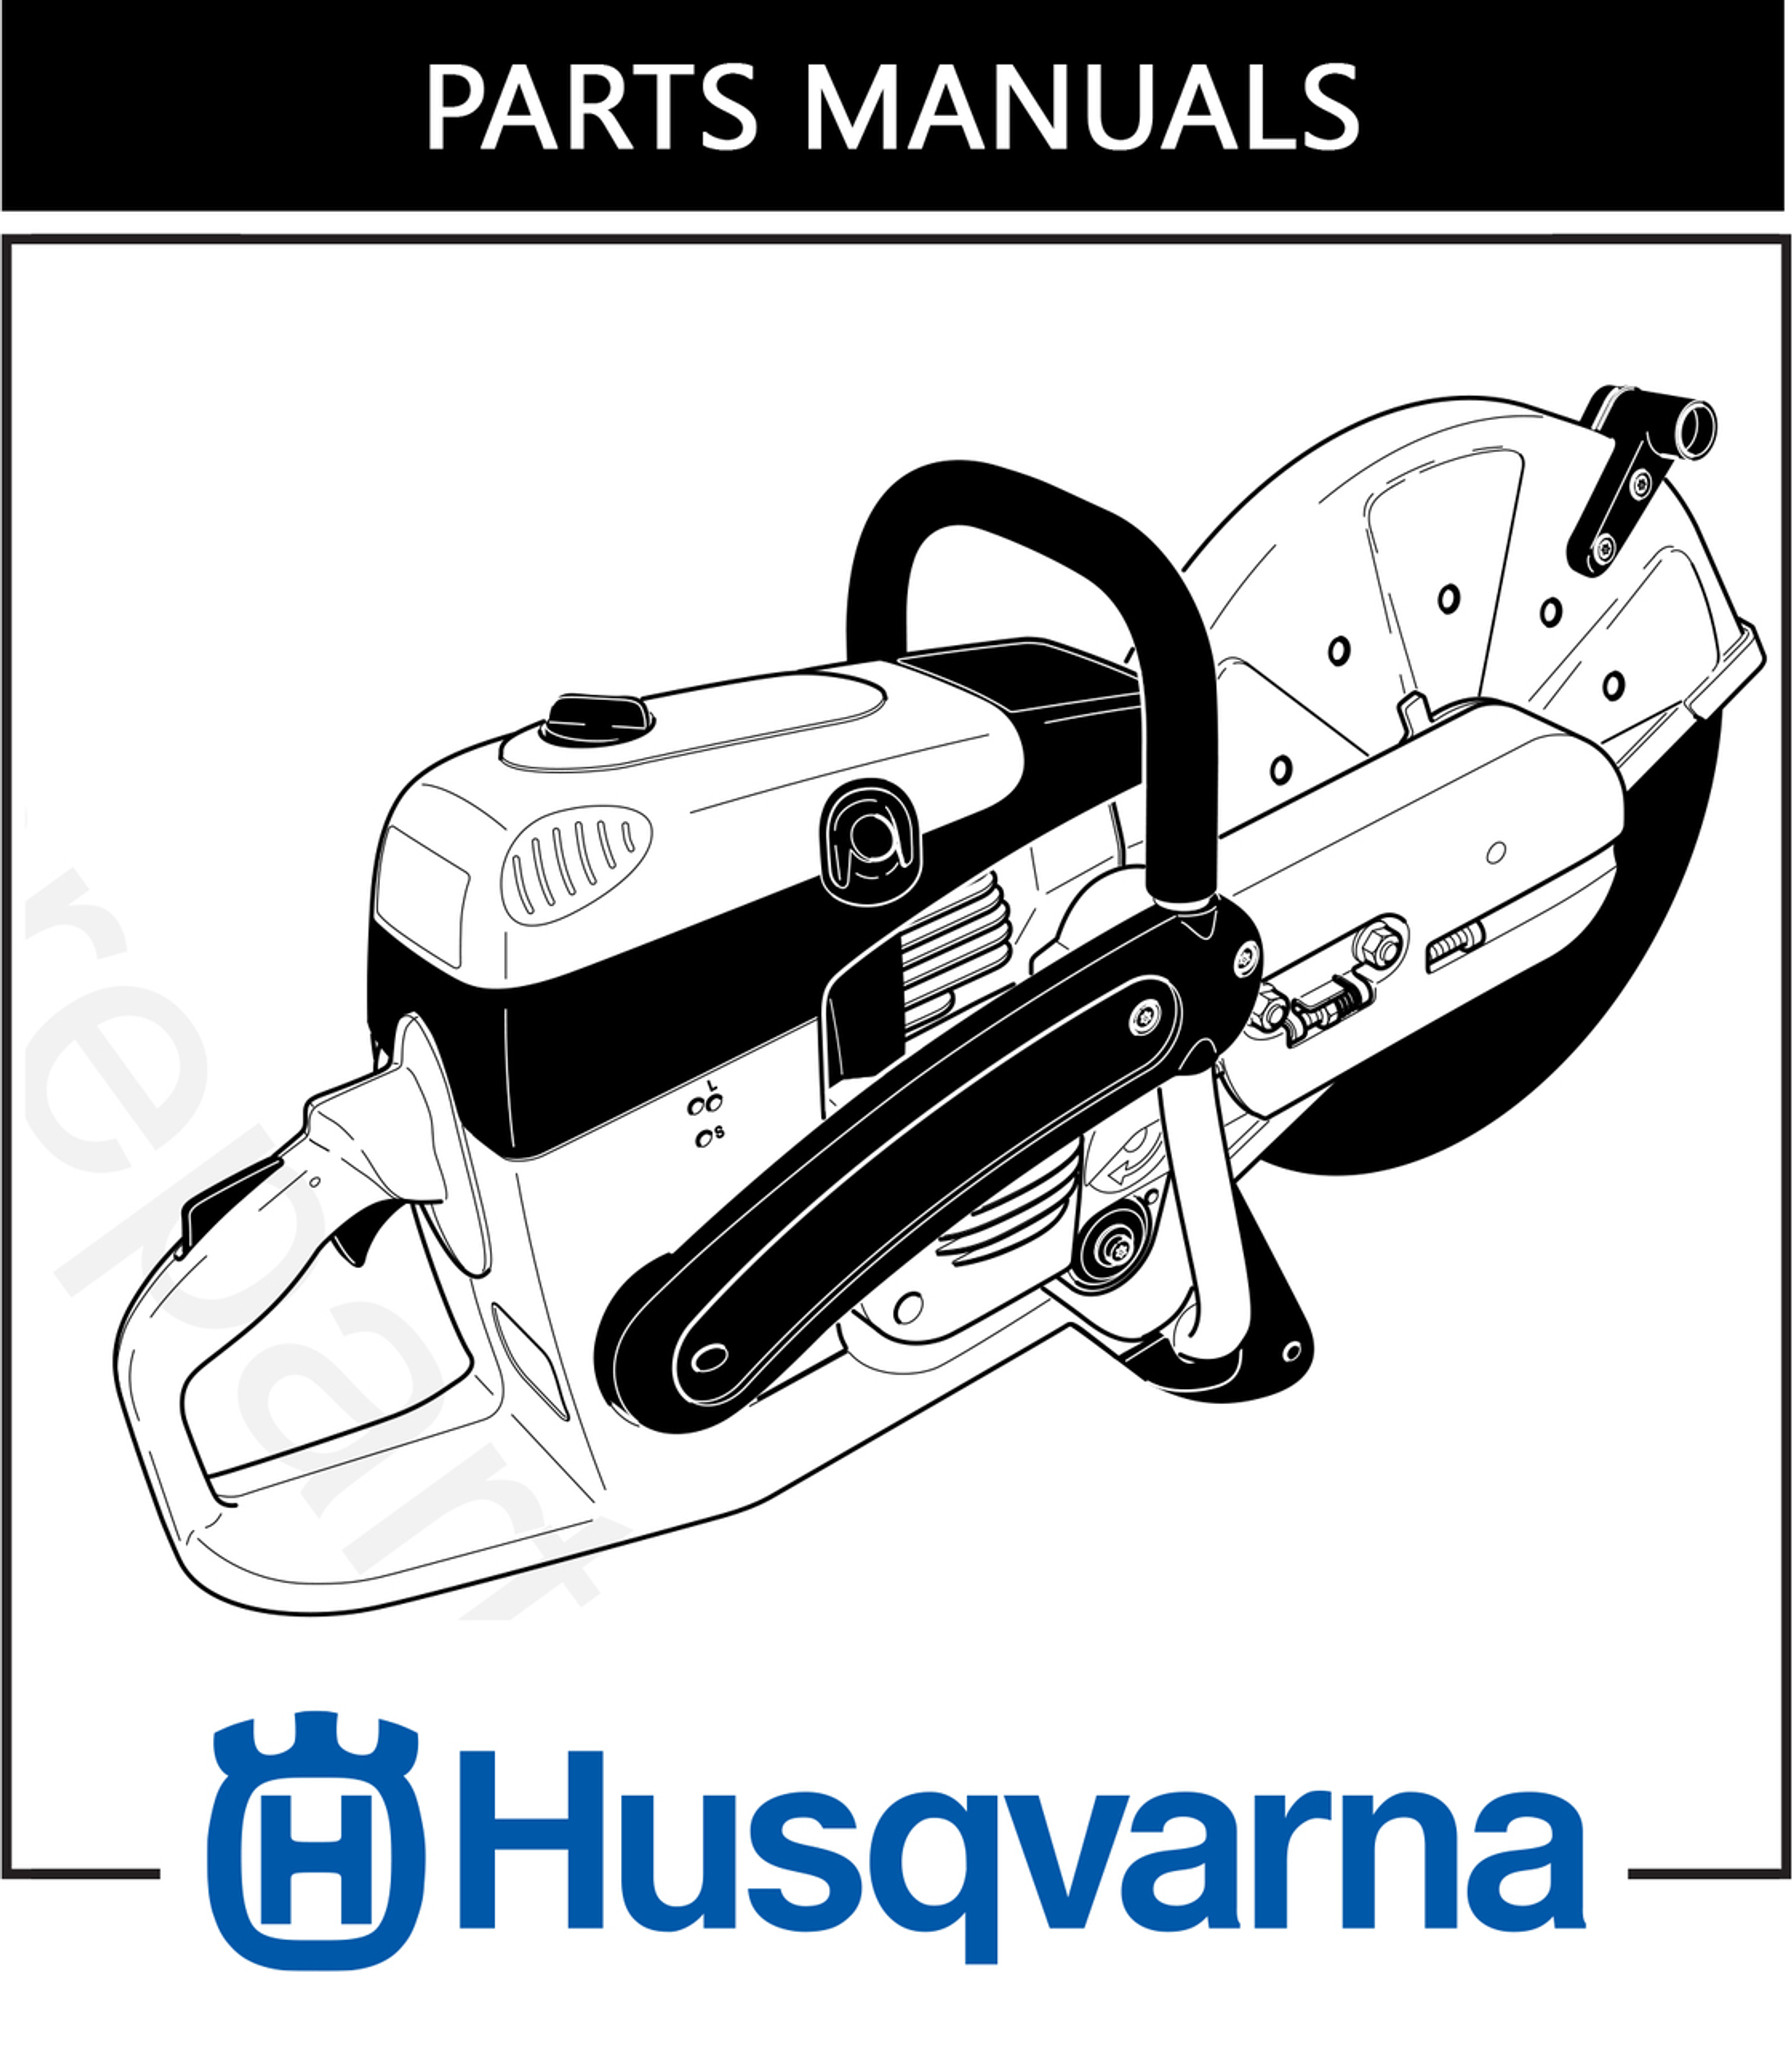 Parts Manual Husqvarna K970 Ii Free Download Dhs Equipment Wiring Diagram And List For Devilbiss Generatorparts